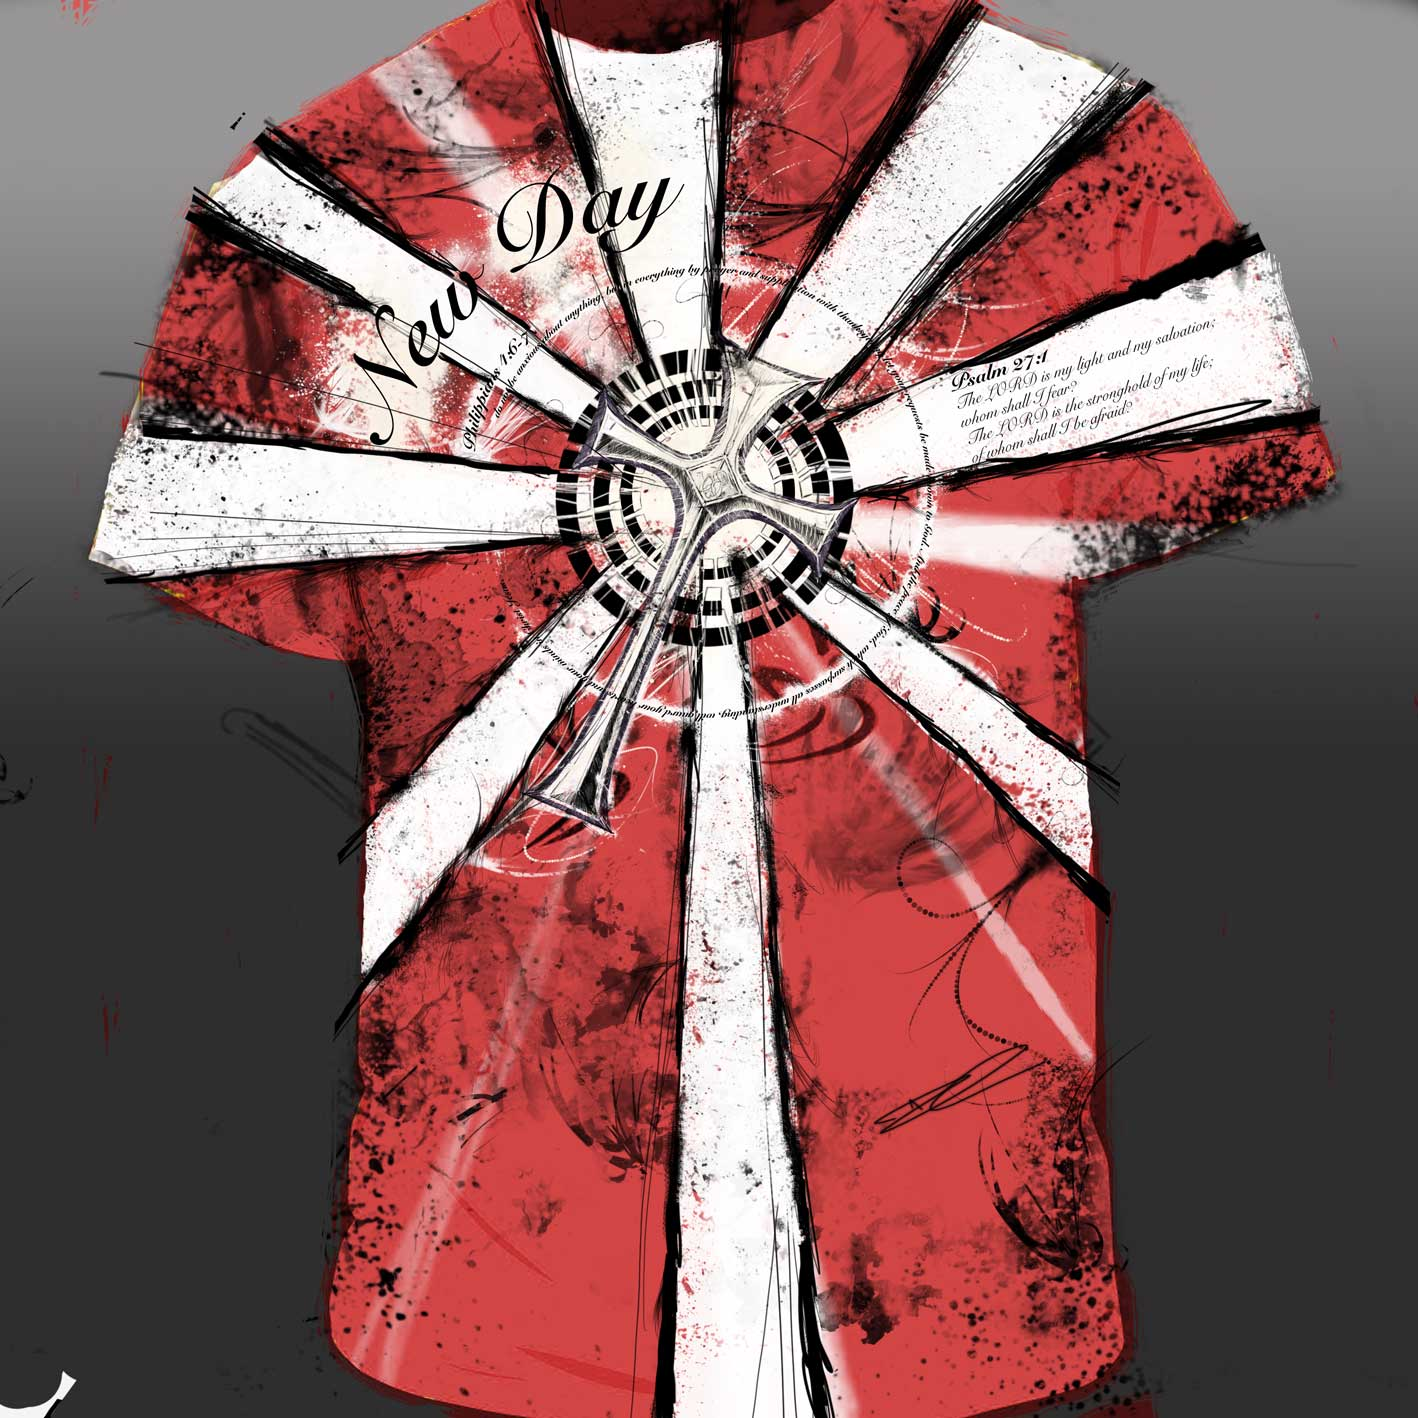 DetailWork Red T shirt New T Shirt Design by Houston Artist